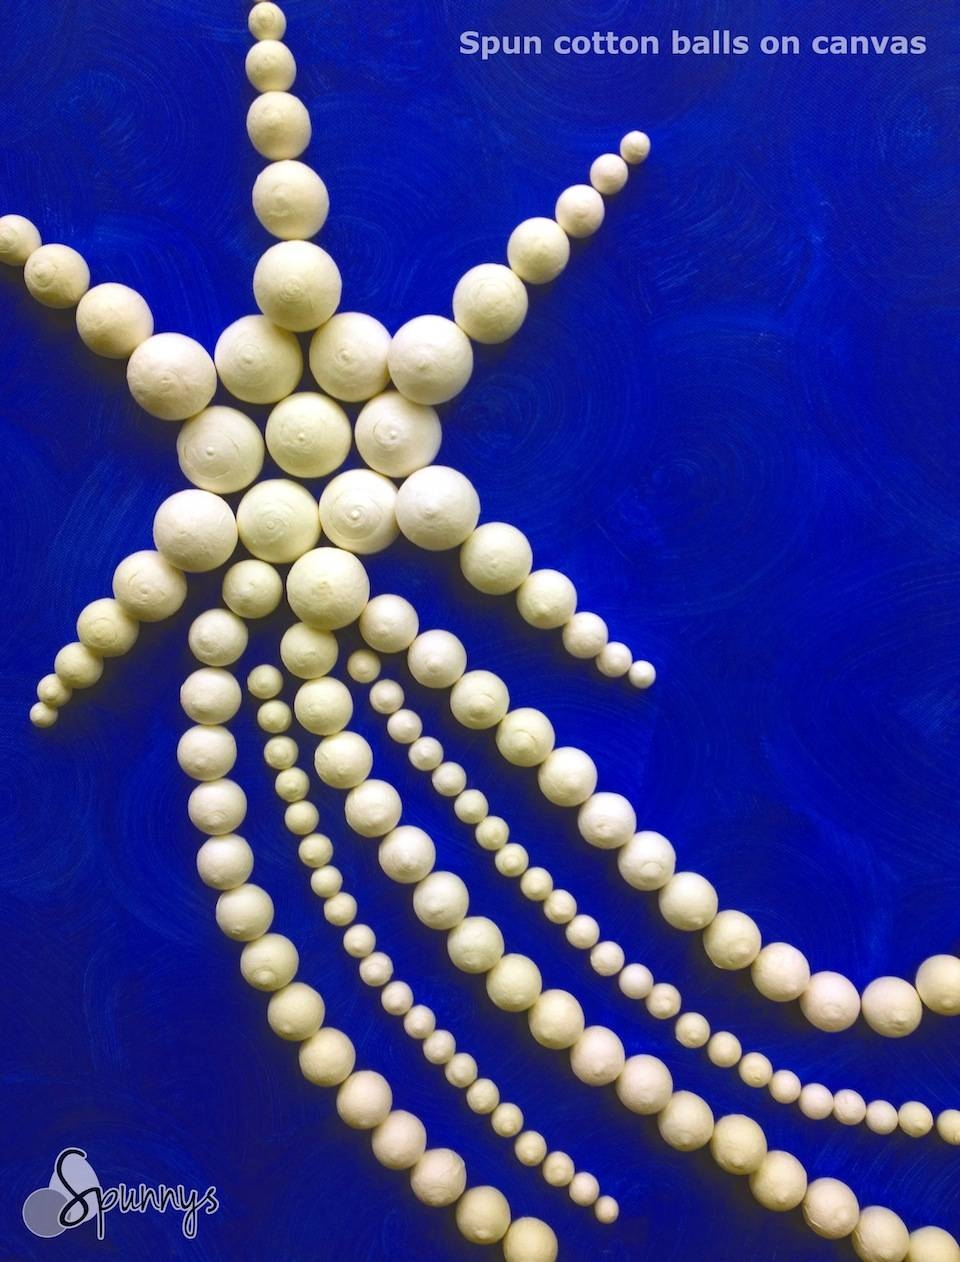 3D Wall Decor Ideas: Create Art With Spun Cotton Balls In Recent Gemstone Wall Art (View 26 of 31)